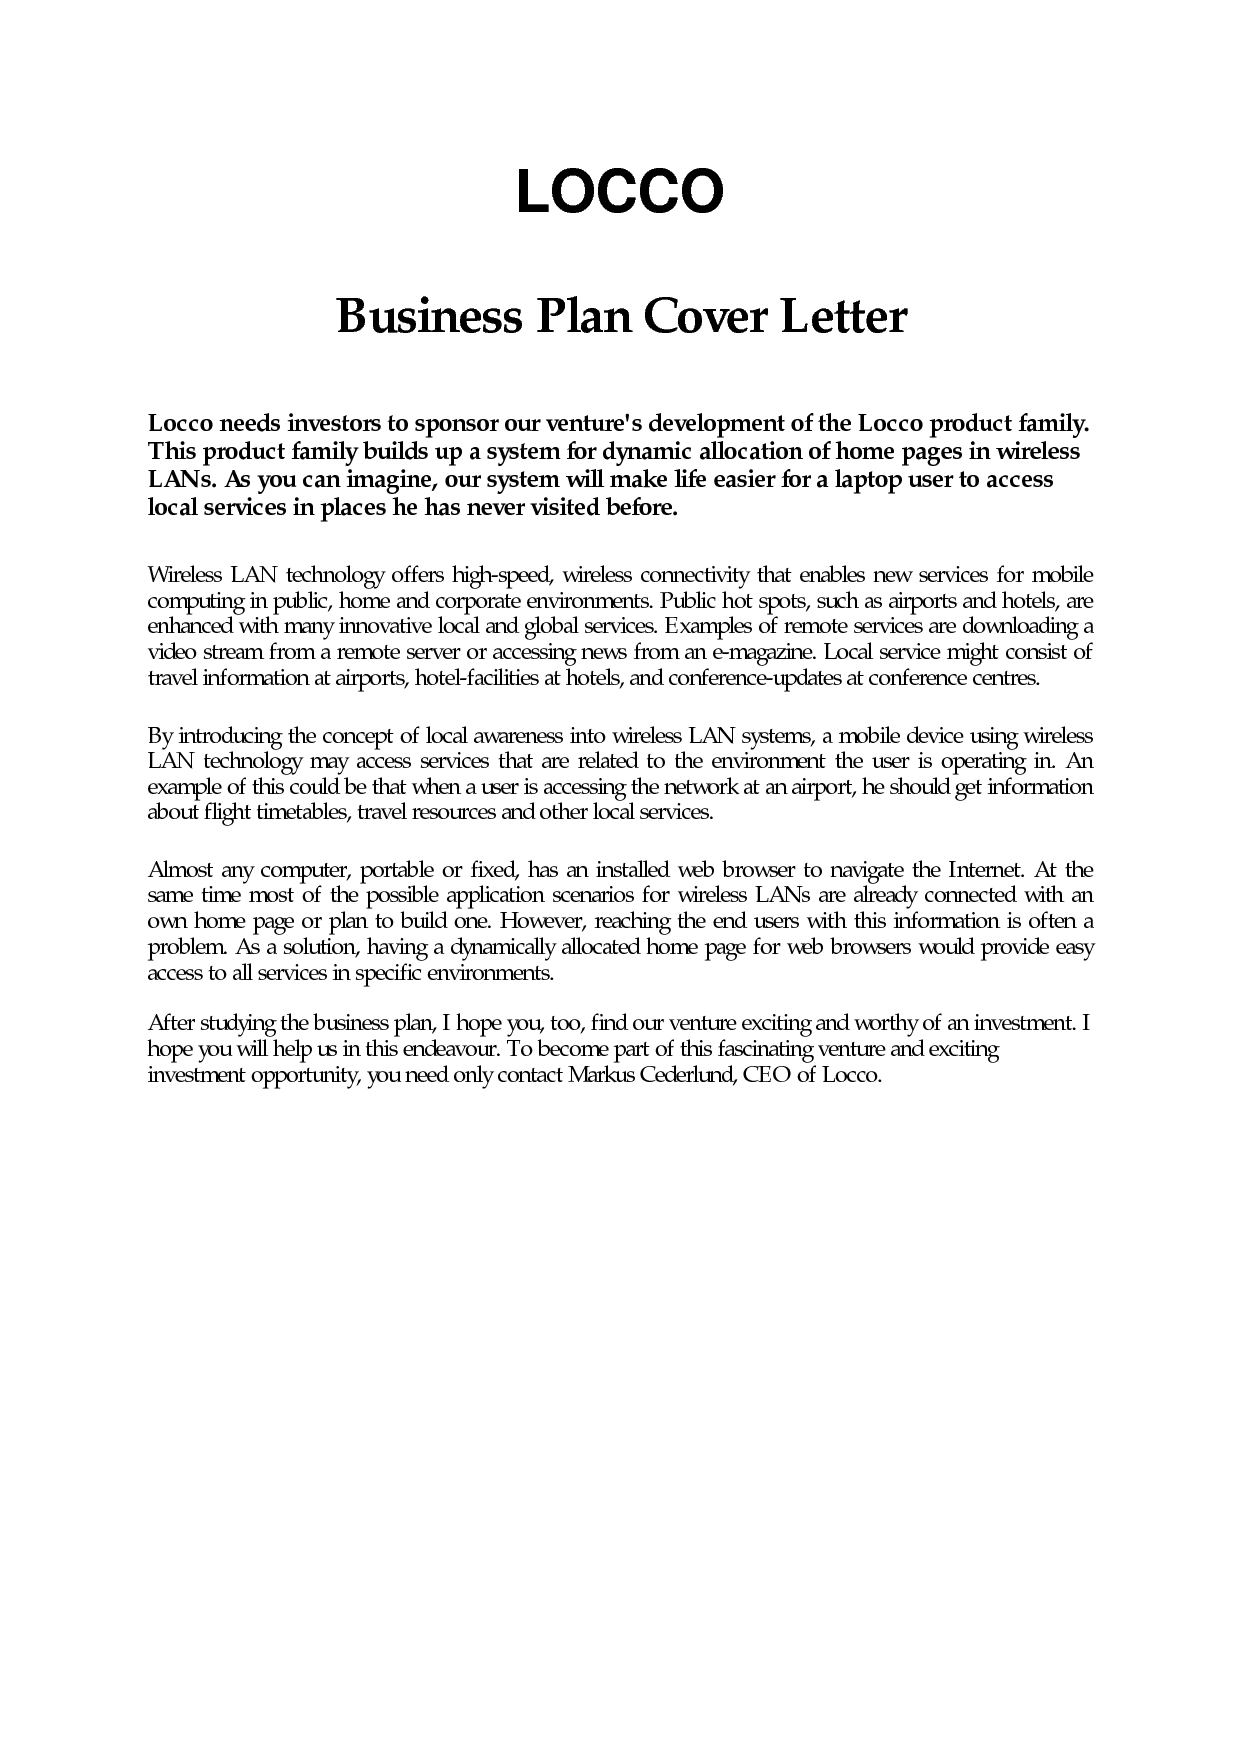 Business plan cover letter sample free example page examples business plan cover letter sample free example page examples template resume proposal design madrichimfo Gallery